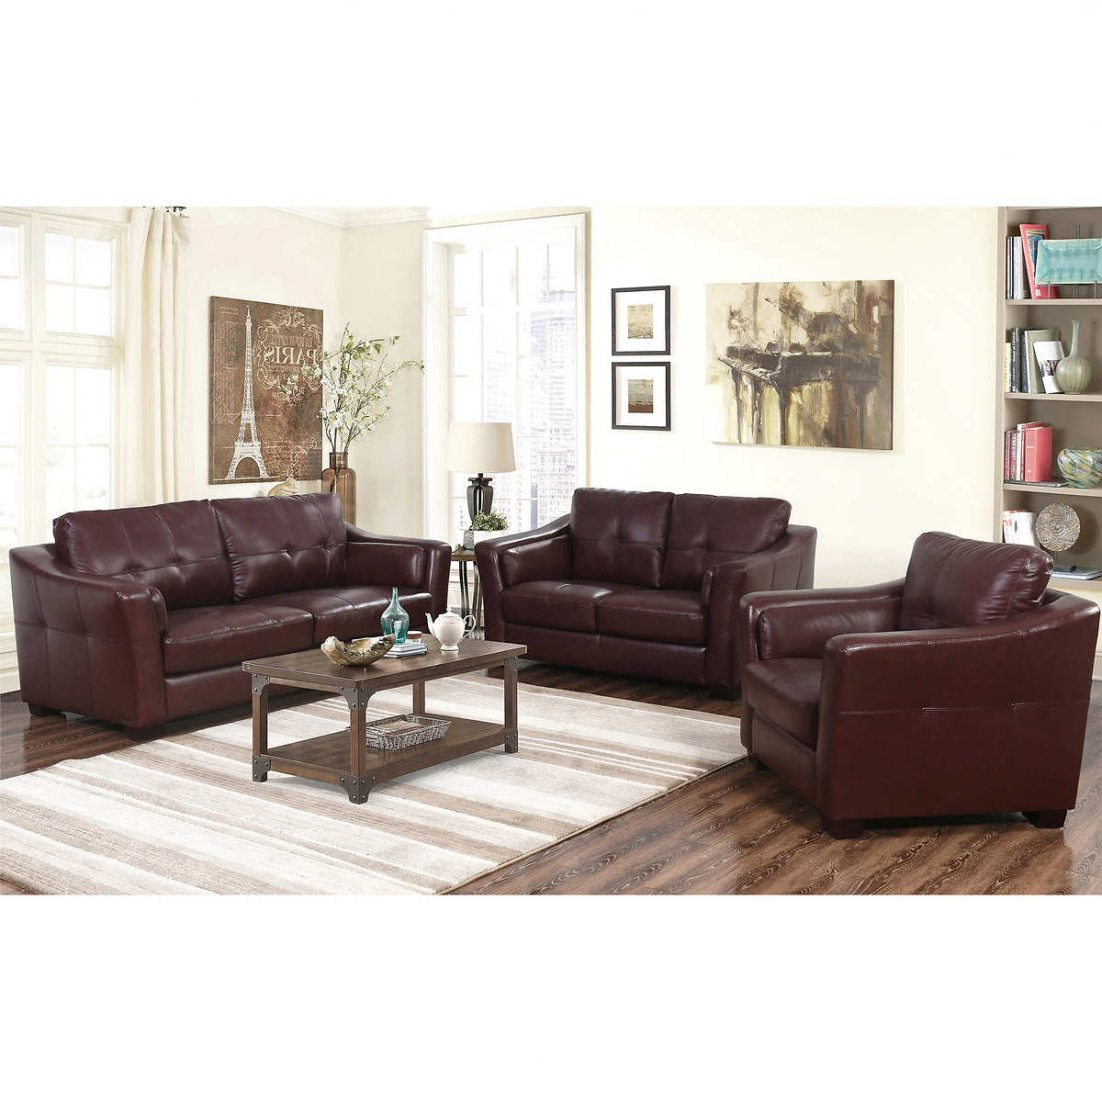 3 Piece Living Room Set Casta Products Pinterest Sofa And Small For Most Recent Mcdade Ash Sofa Chairs (View 20 of 20)